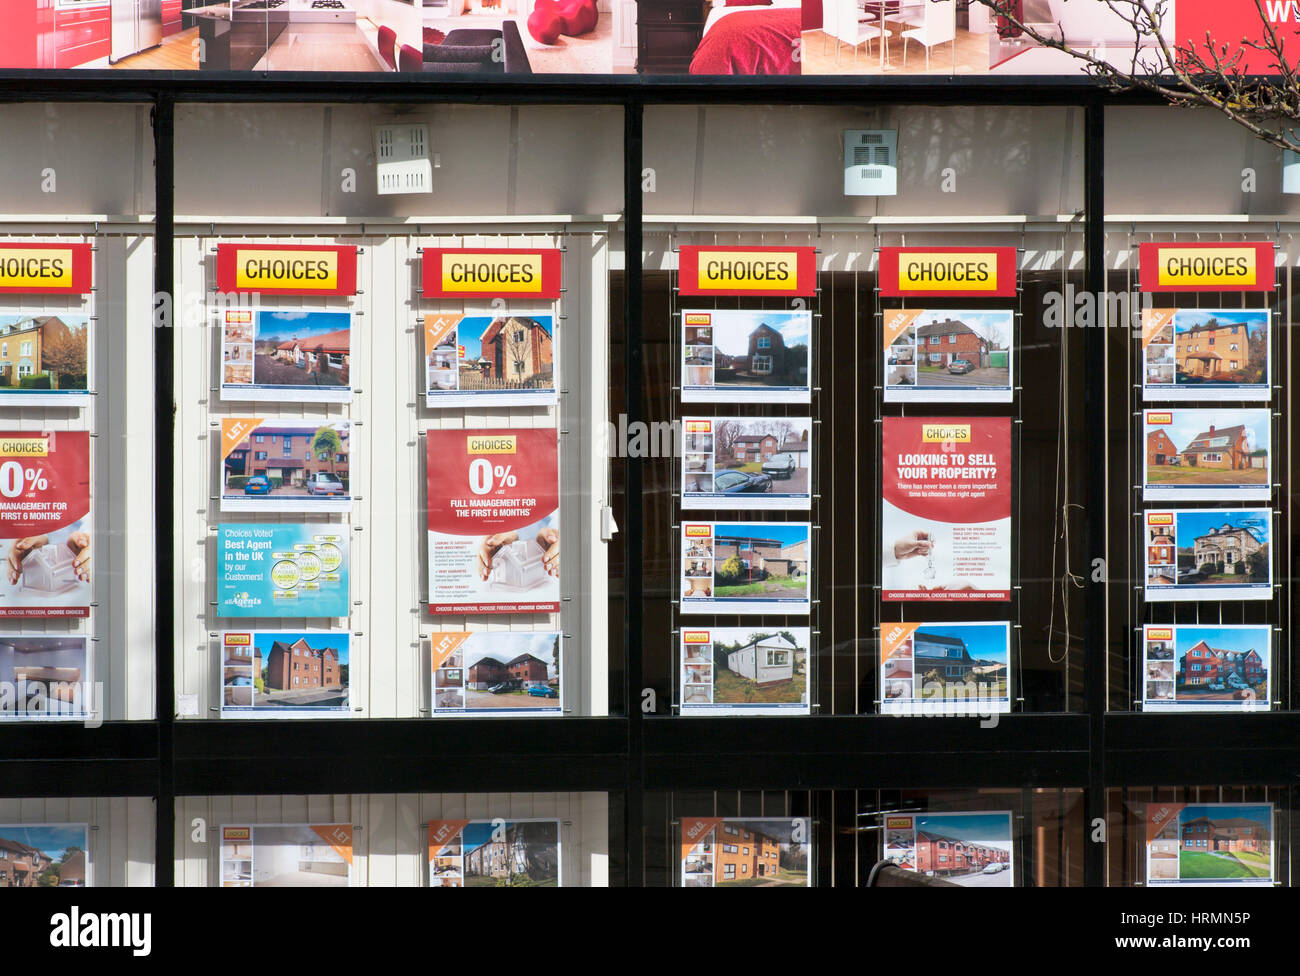 Choices Estates Agents Front Window Display of Property For Sale - Stock Image